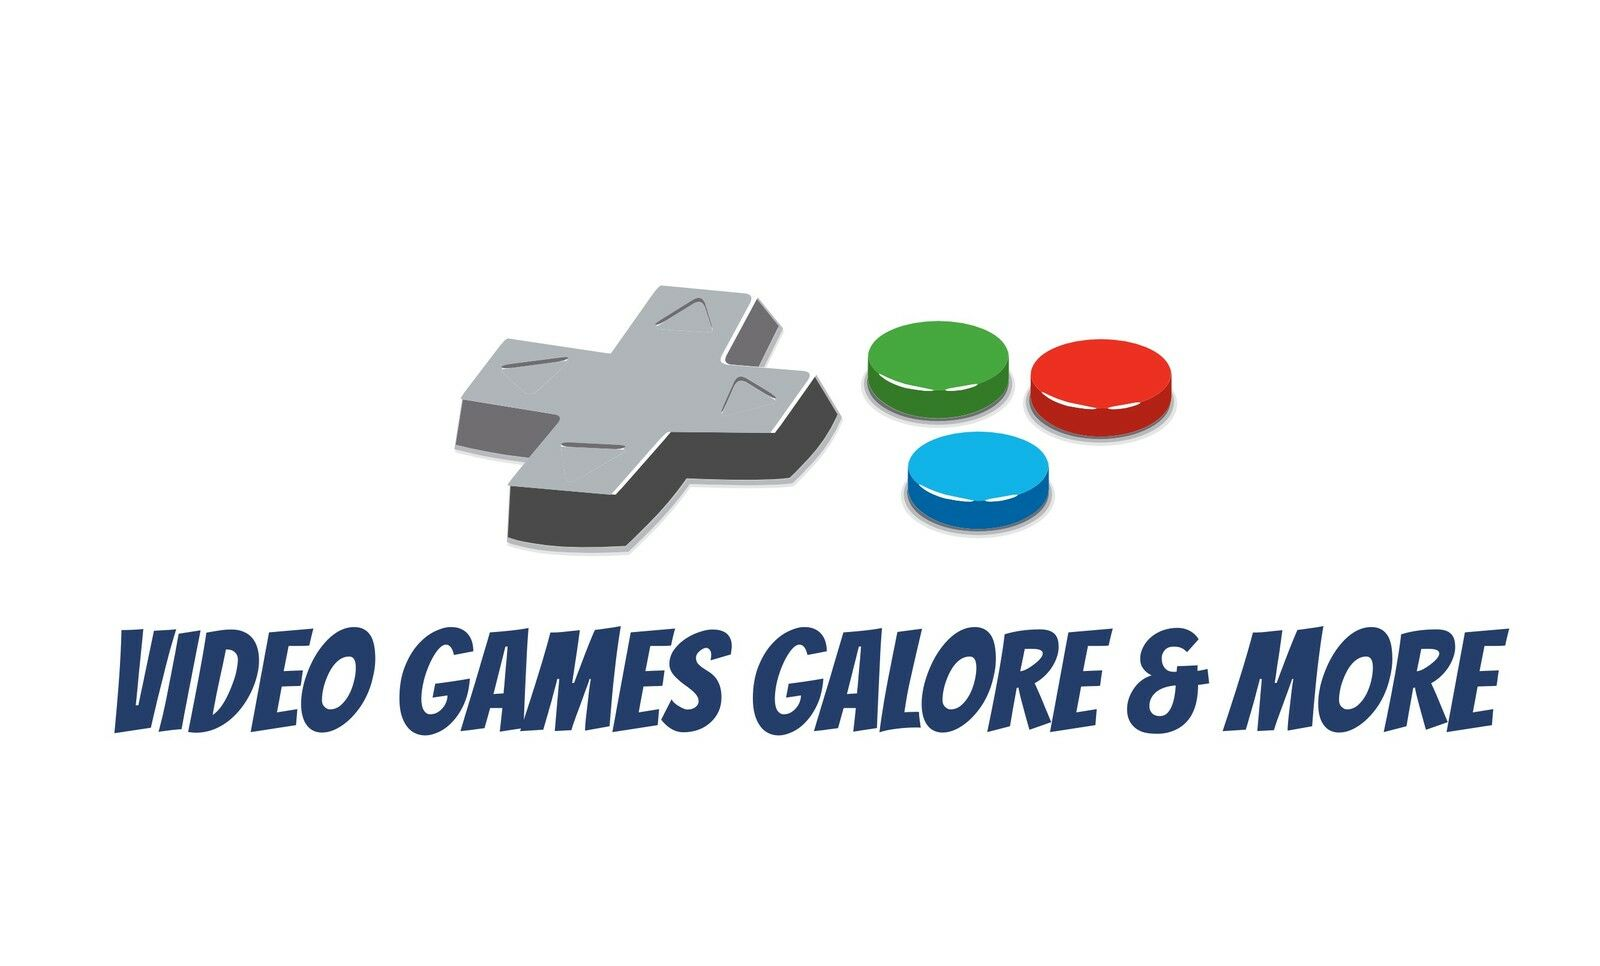 Video Games Galore & More